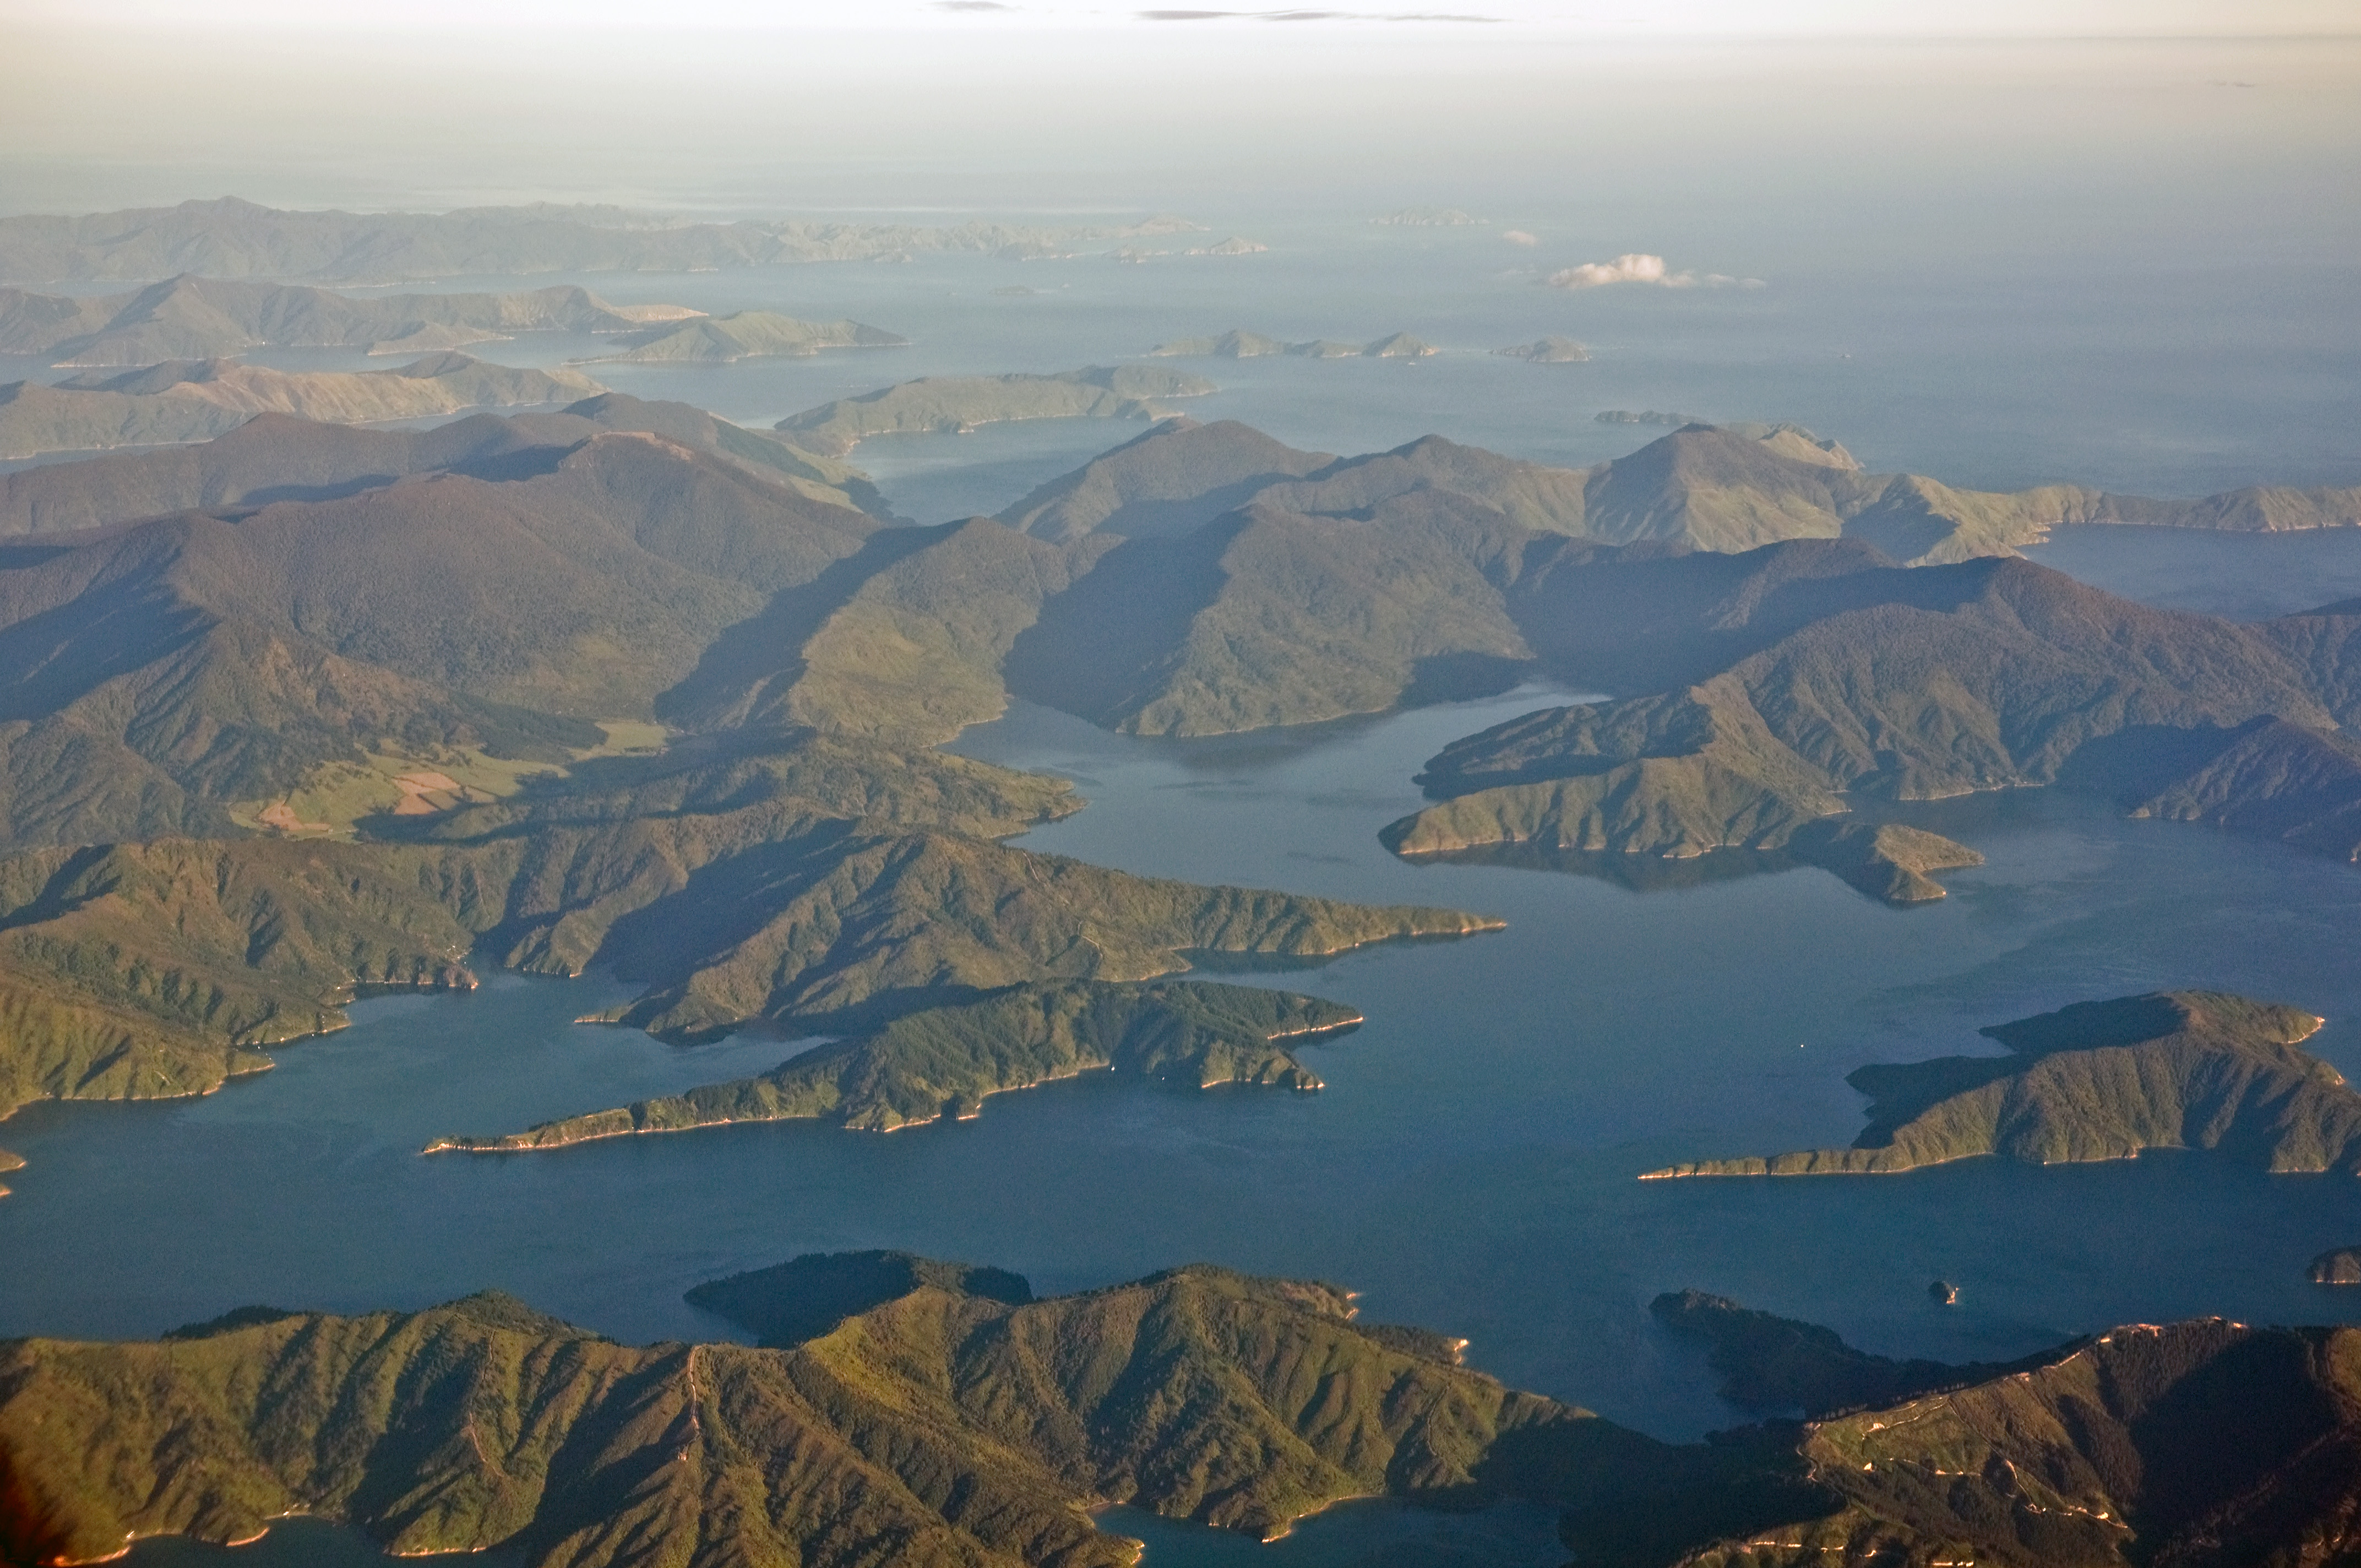 Marlborough Sounds New Zealand  city images : Description Marlborough Sounds, New Zealand, 26th. Nov. 2010 Flickr ...